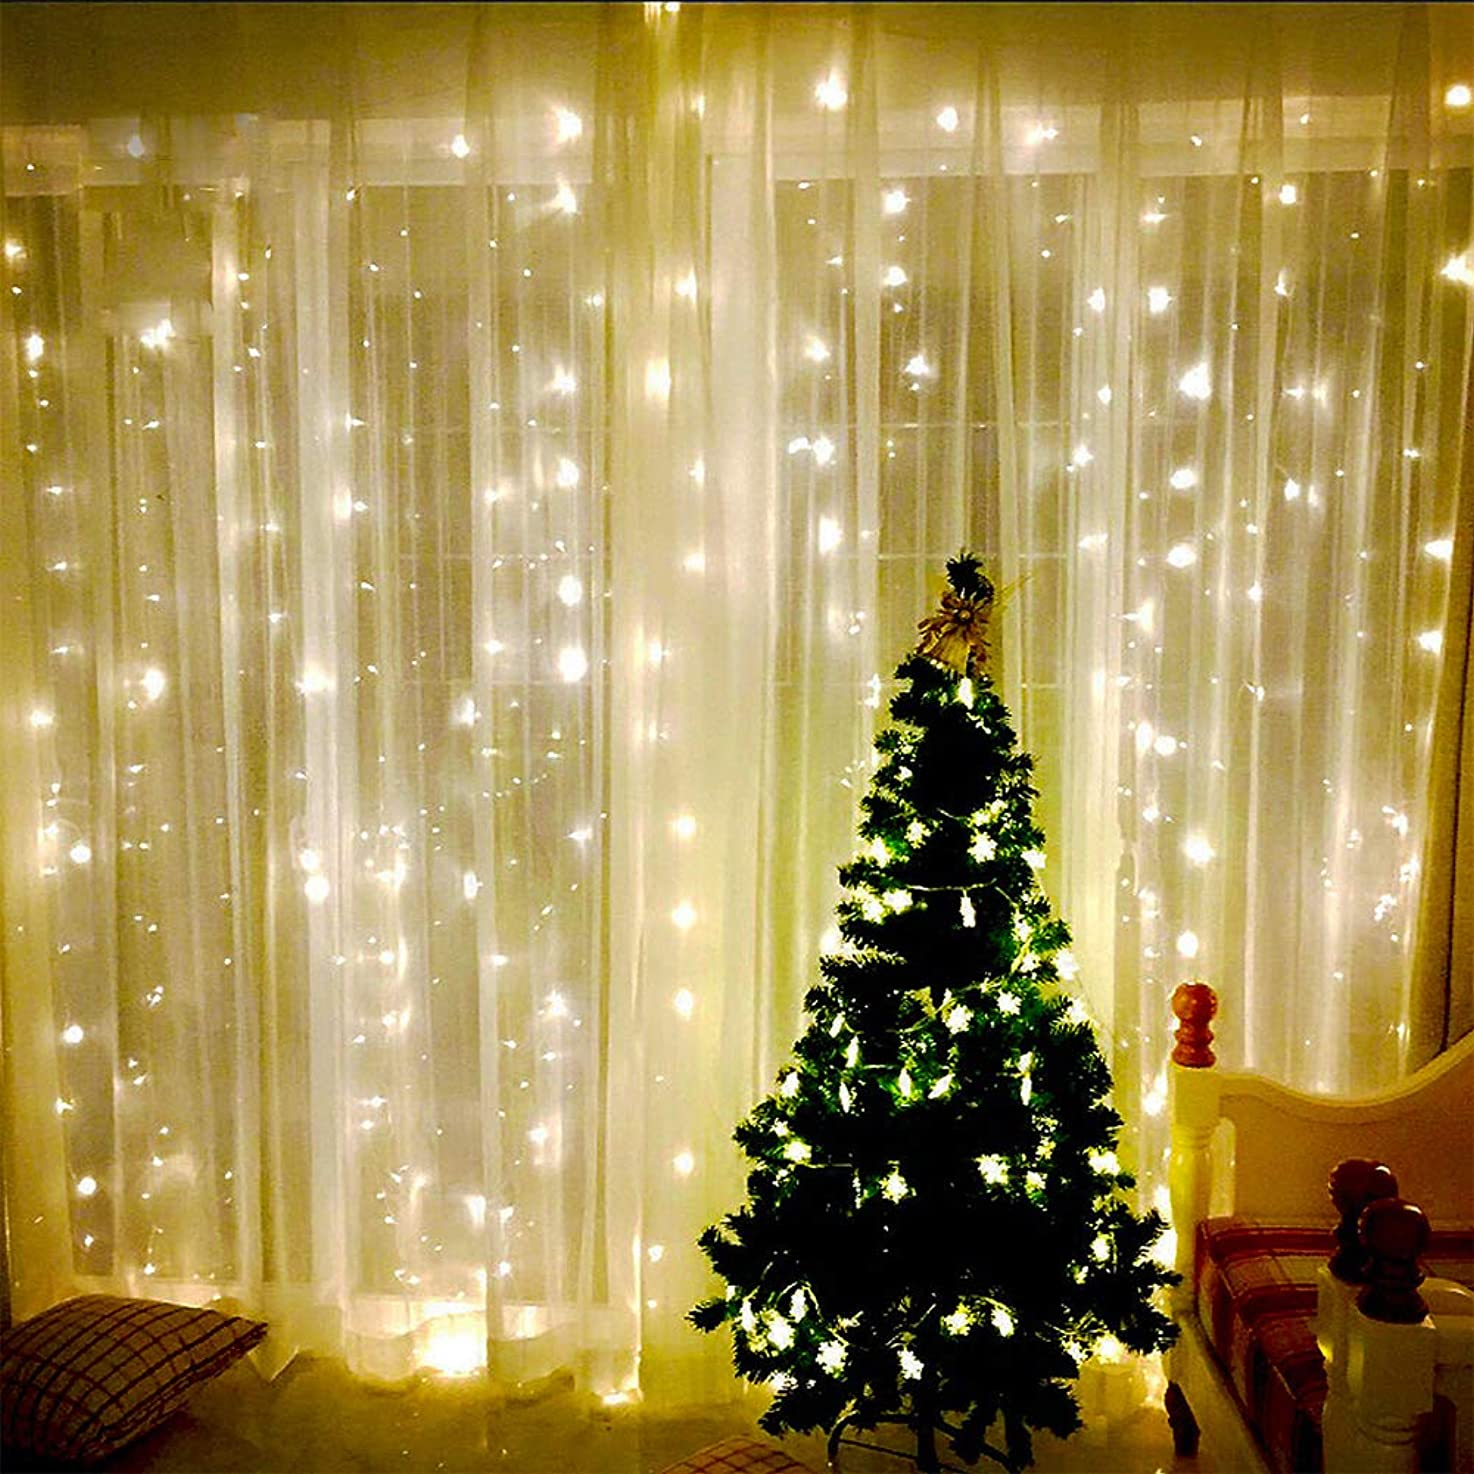 LED Window Curtain Lights, JESLED 600 LEDs Curtain Icicle Light String for Wedding Party, Warm White, 19.6ft x 9.8ft/6x3m, 8 Modes Setting, Home Garden Bedroom Outdoor Indoor Wall Backdrop Decorations